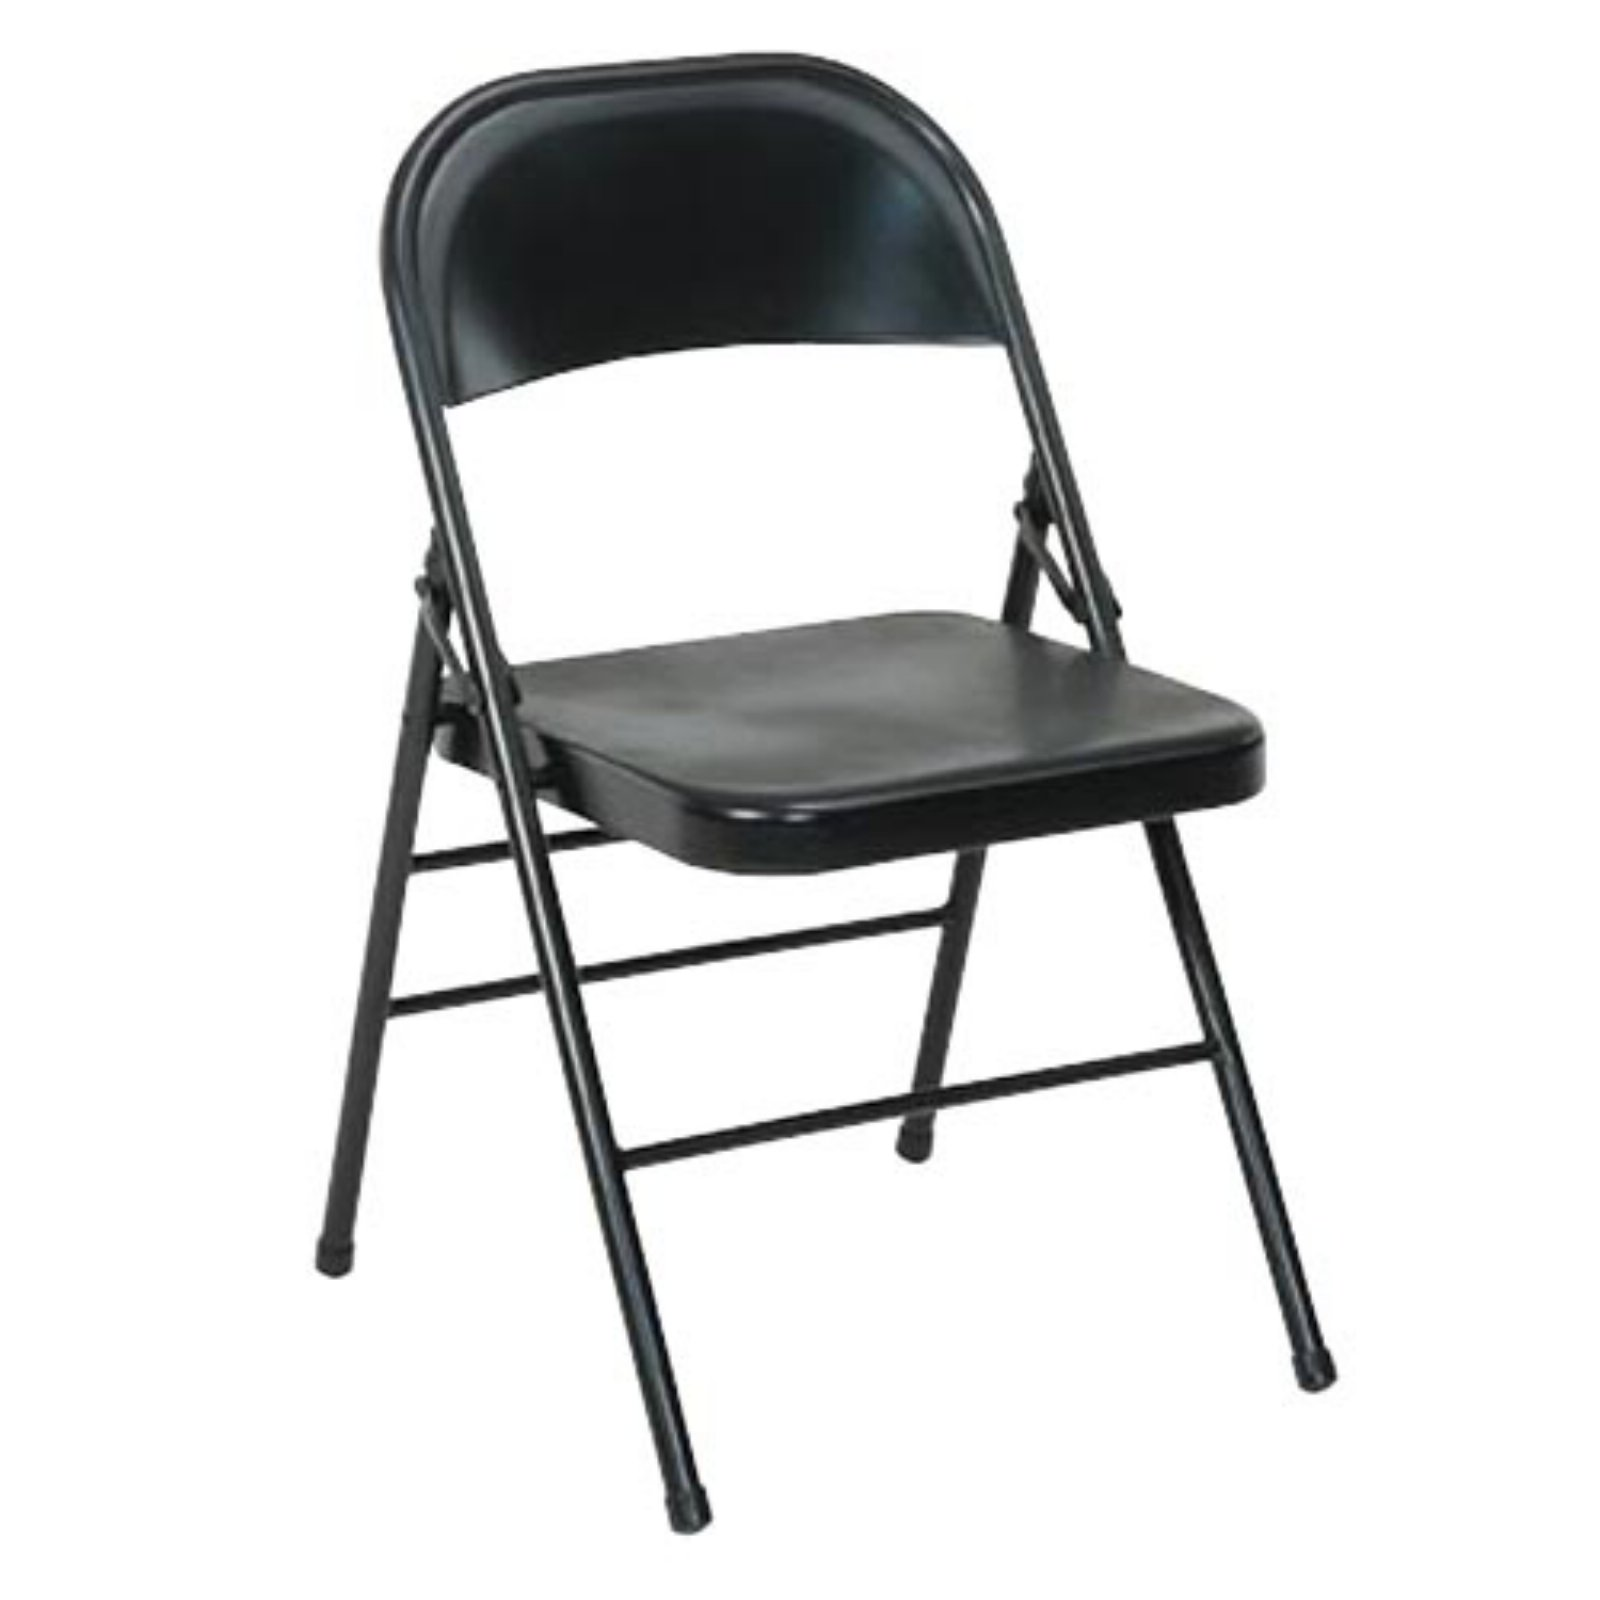 Cosco Folding Chair Cosco All Steel Folding Chair 4 Pack